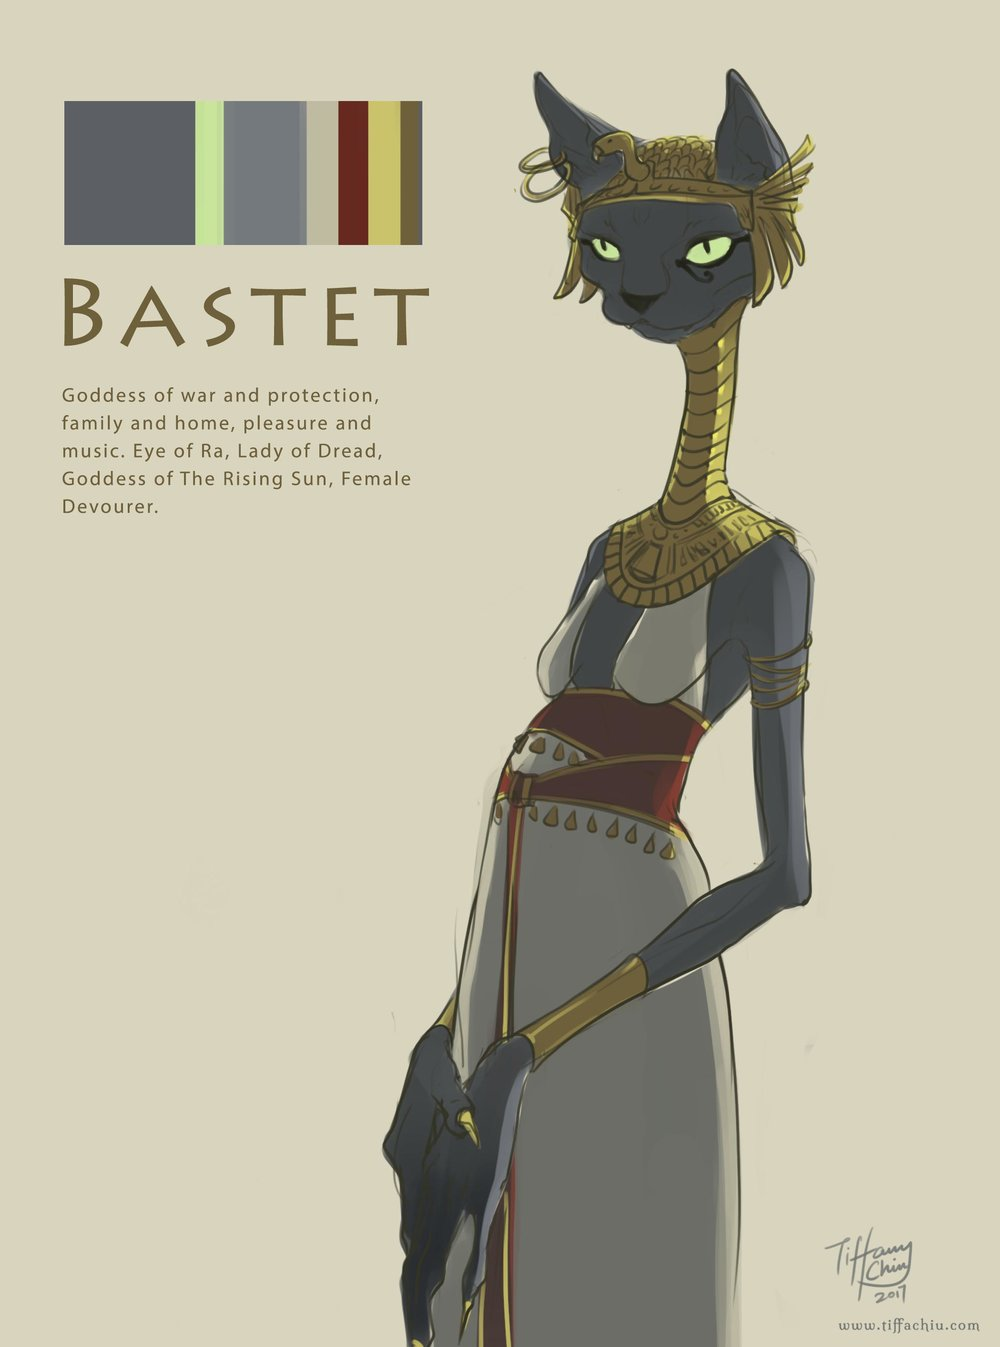 Concept for Bastet, Egyptian goddess of war and protection, family and home, pleasure and music.